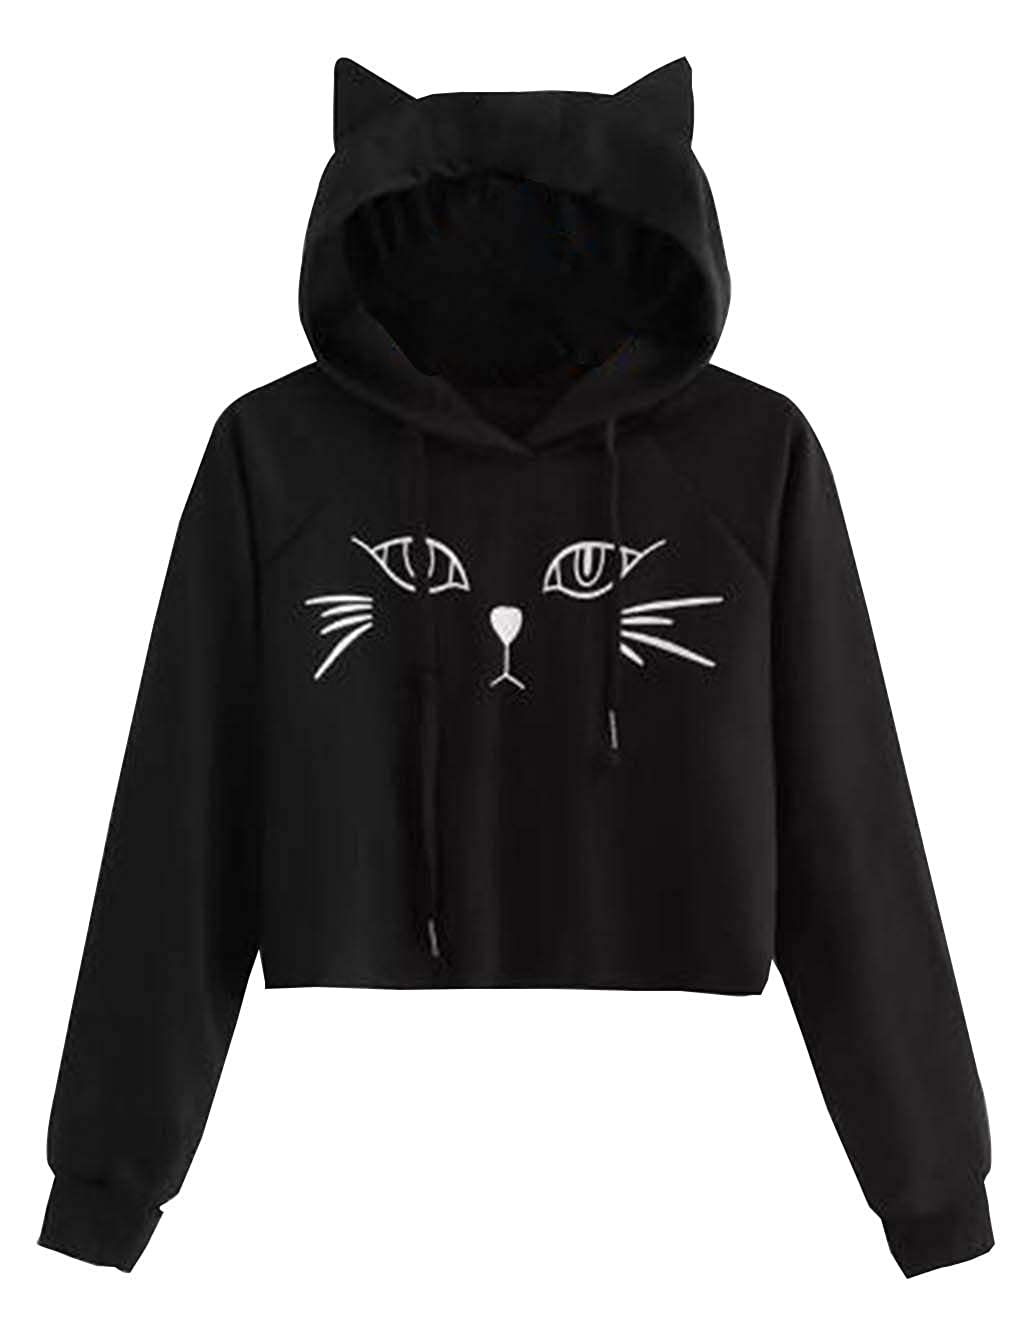 d19f2dd995 Amazon.com  Cute Sweatshirts for Teen Girls Cat Ear Print Jacket Crop Top  Cropped Hoodie Pullover Jumper Sweater Tops  Clothing